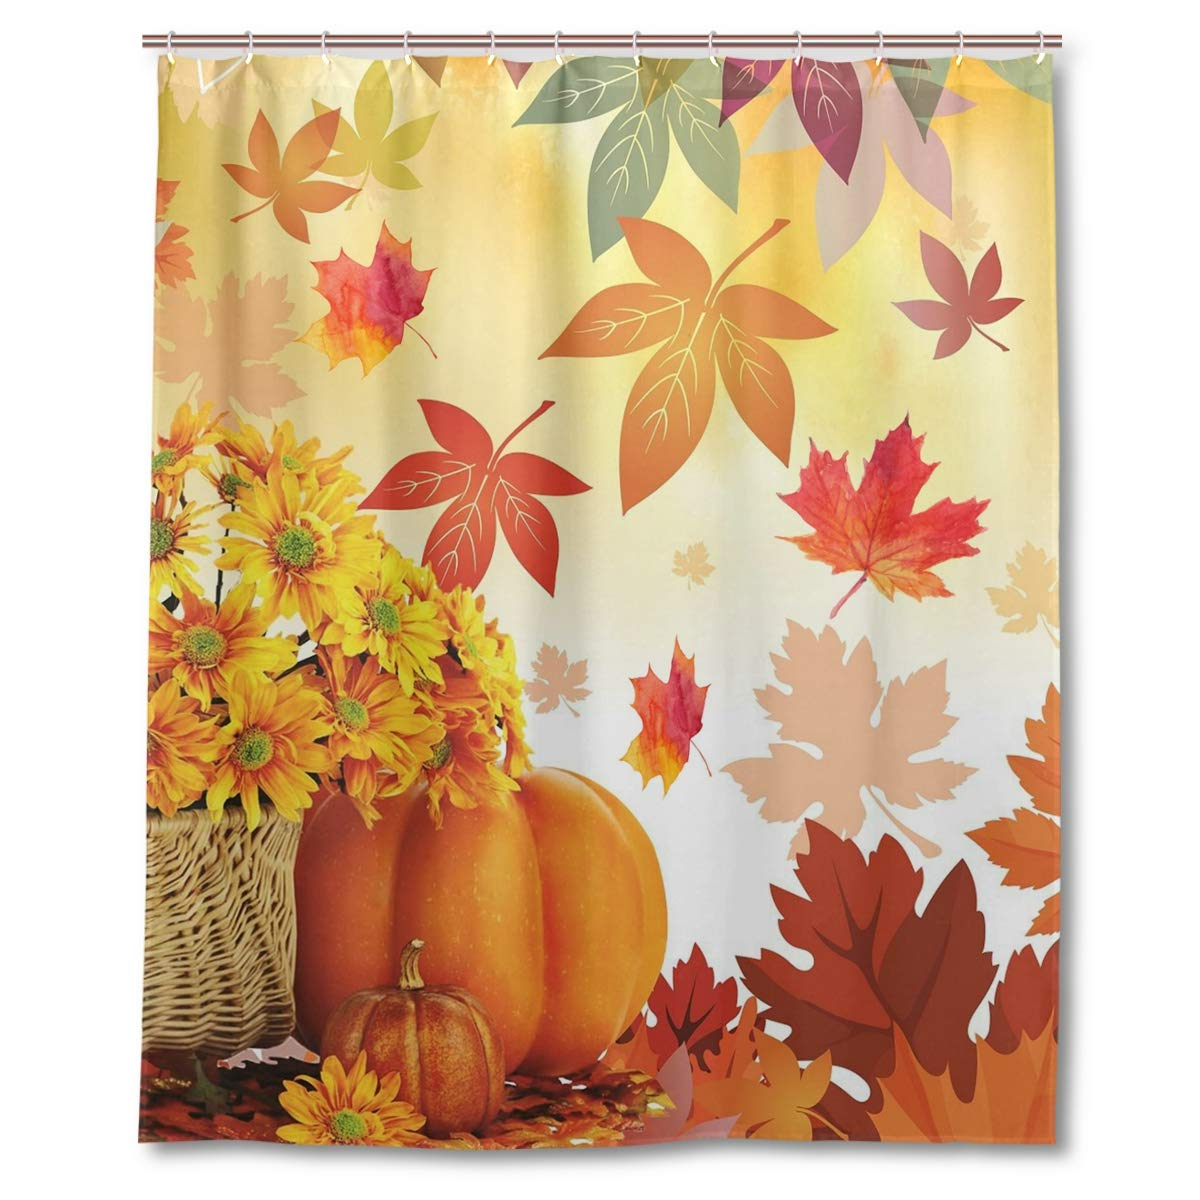 Newest Wamika Sunflower Maple Leaves Pumpkin Autumn Fall Flowers Shower Curtain Polyester Waterproof,happy Thanksgiving Day Harvest Give Thanks Bath Room Within Window Curtains Sets With Colorful Marketplace Vegetable And Sunflower Print (View 7 of 20)